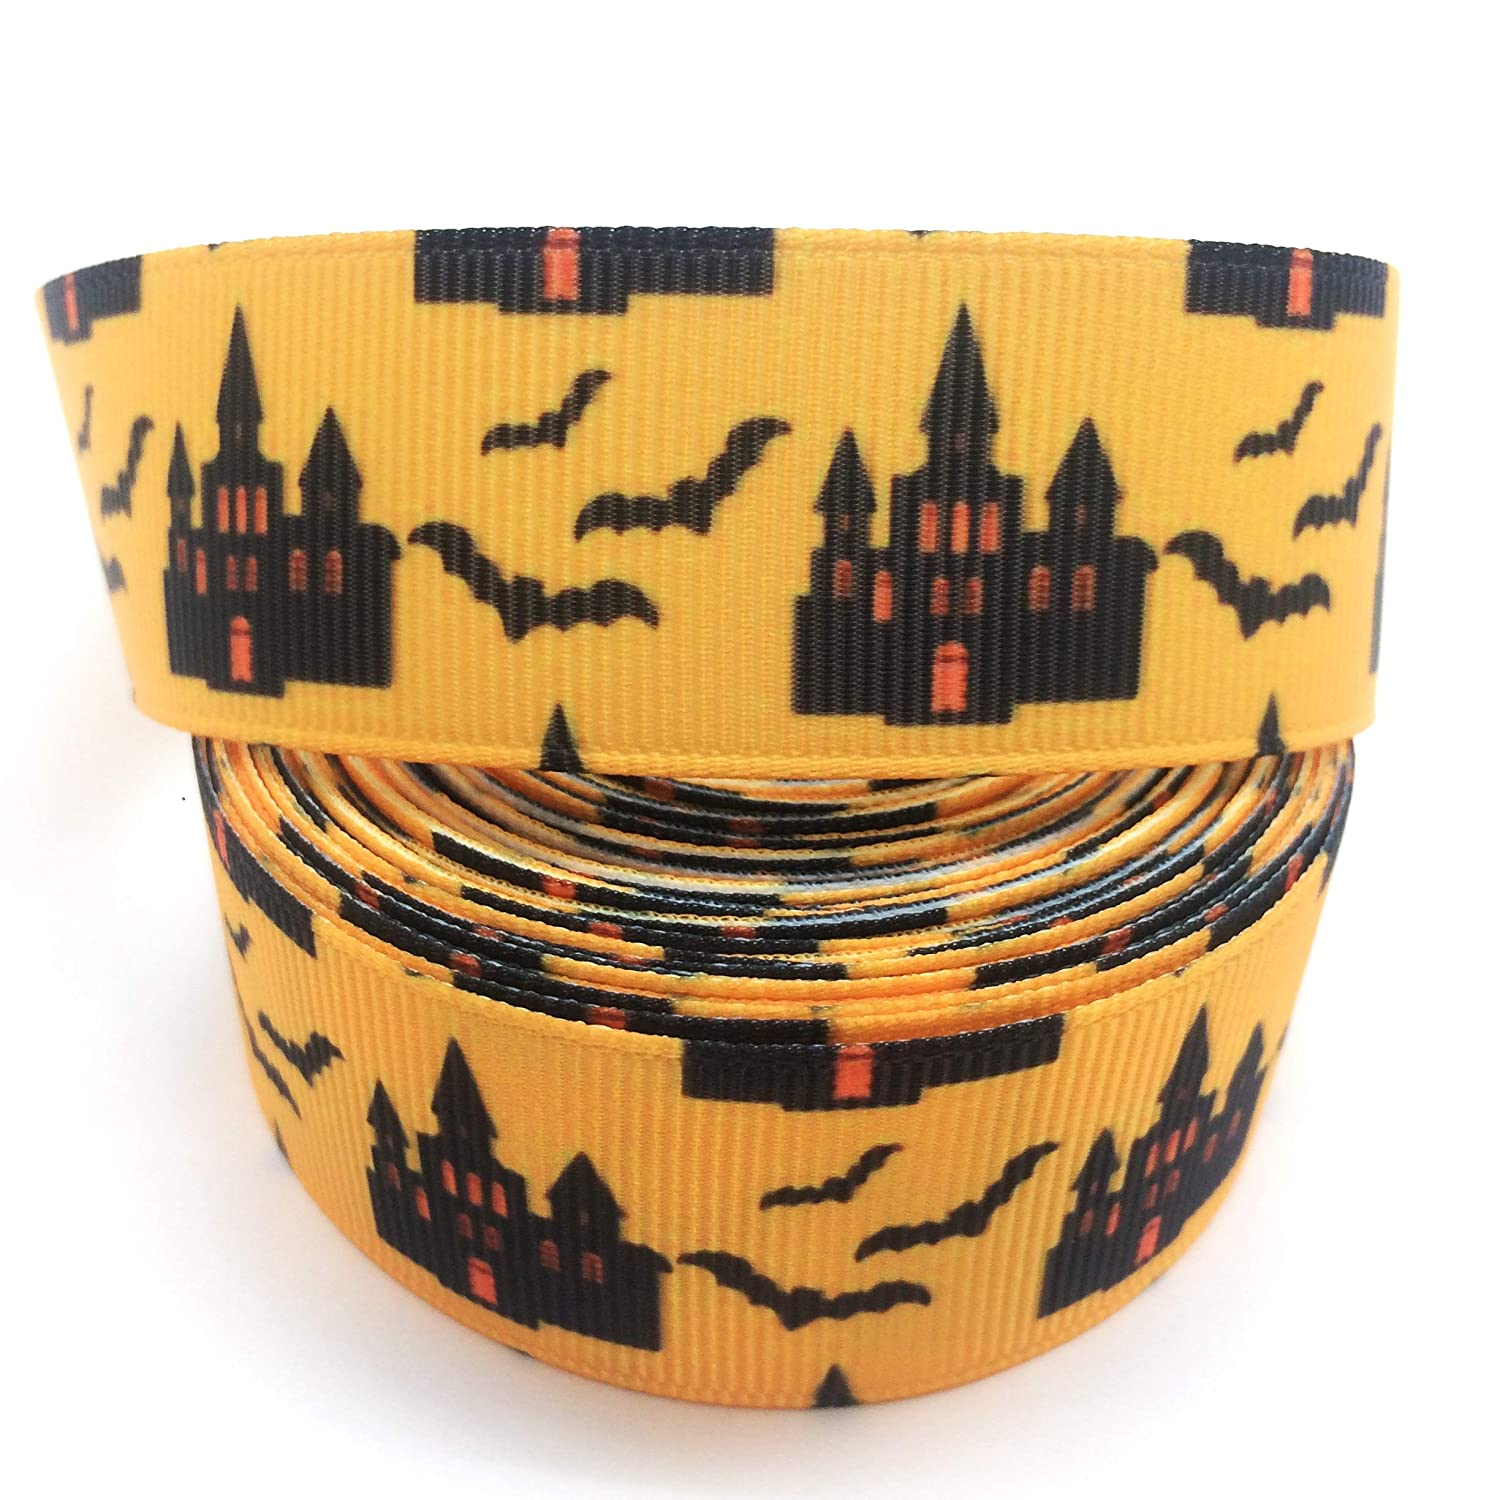 PEPPERLONELY Brand 10 Yards 22mm (7/8 Inch) Halloween Skull & Ghost Printed Grosgrain Ribbon BCACS22380